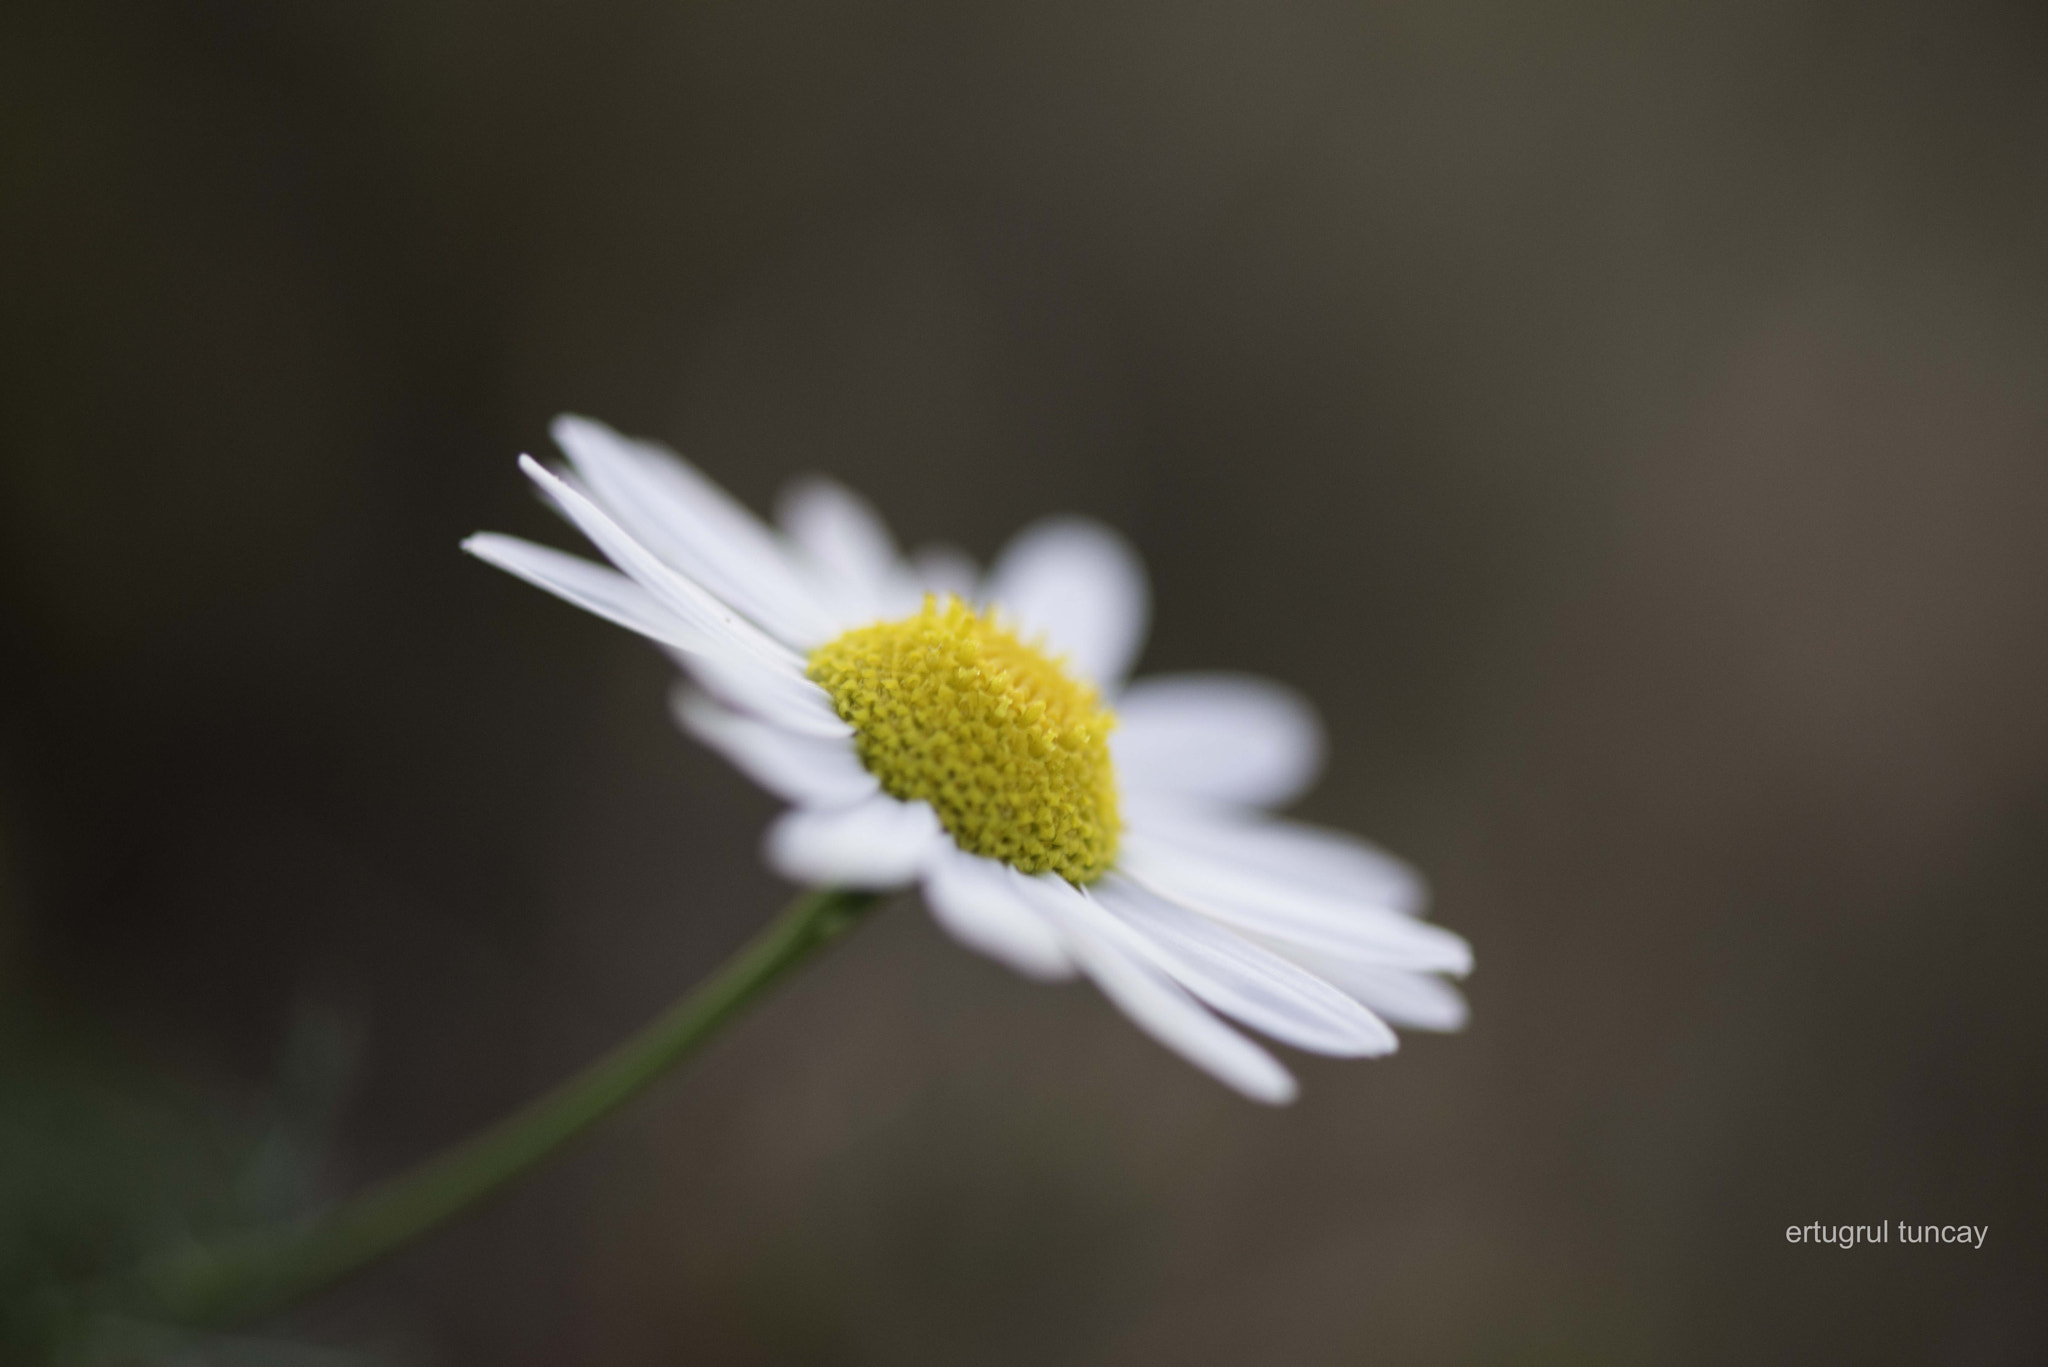 Photograph a lonely daisy by Ertugrul Tuncay on 500px